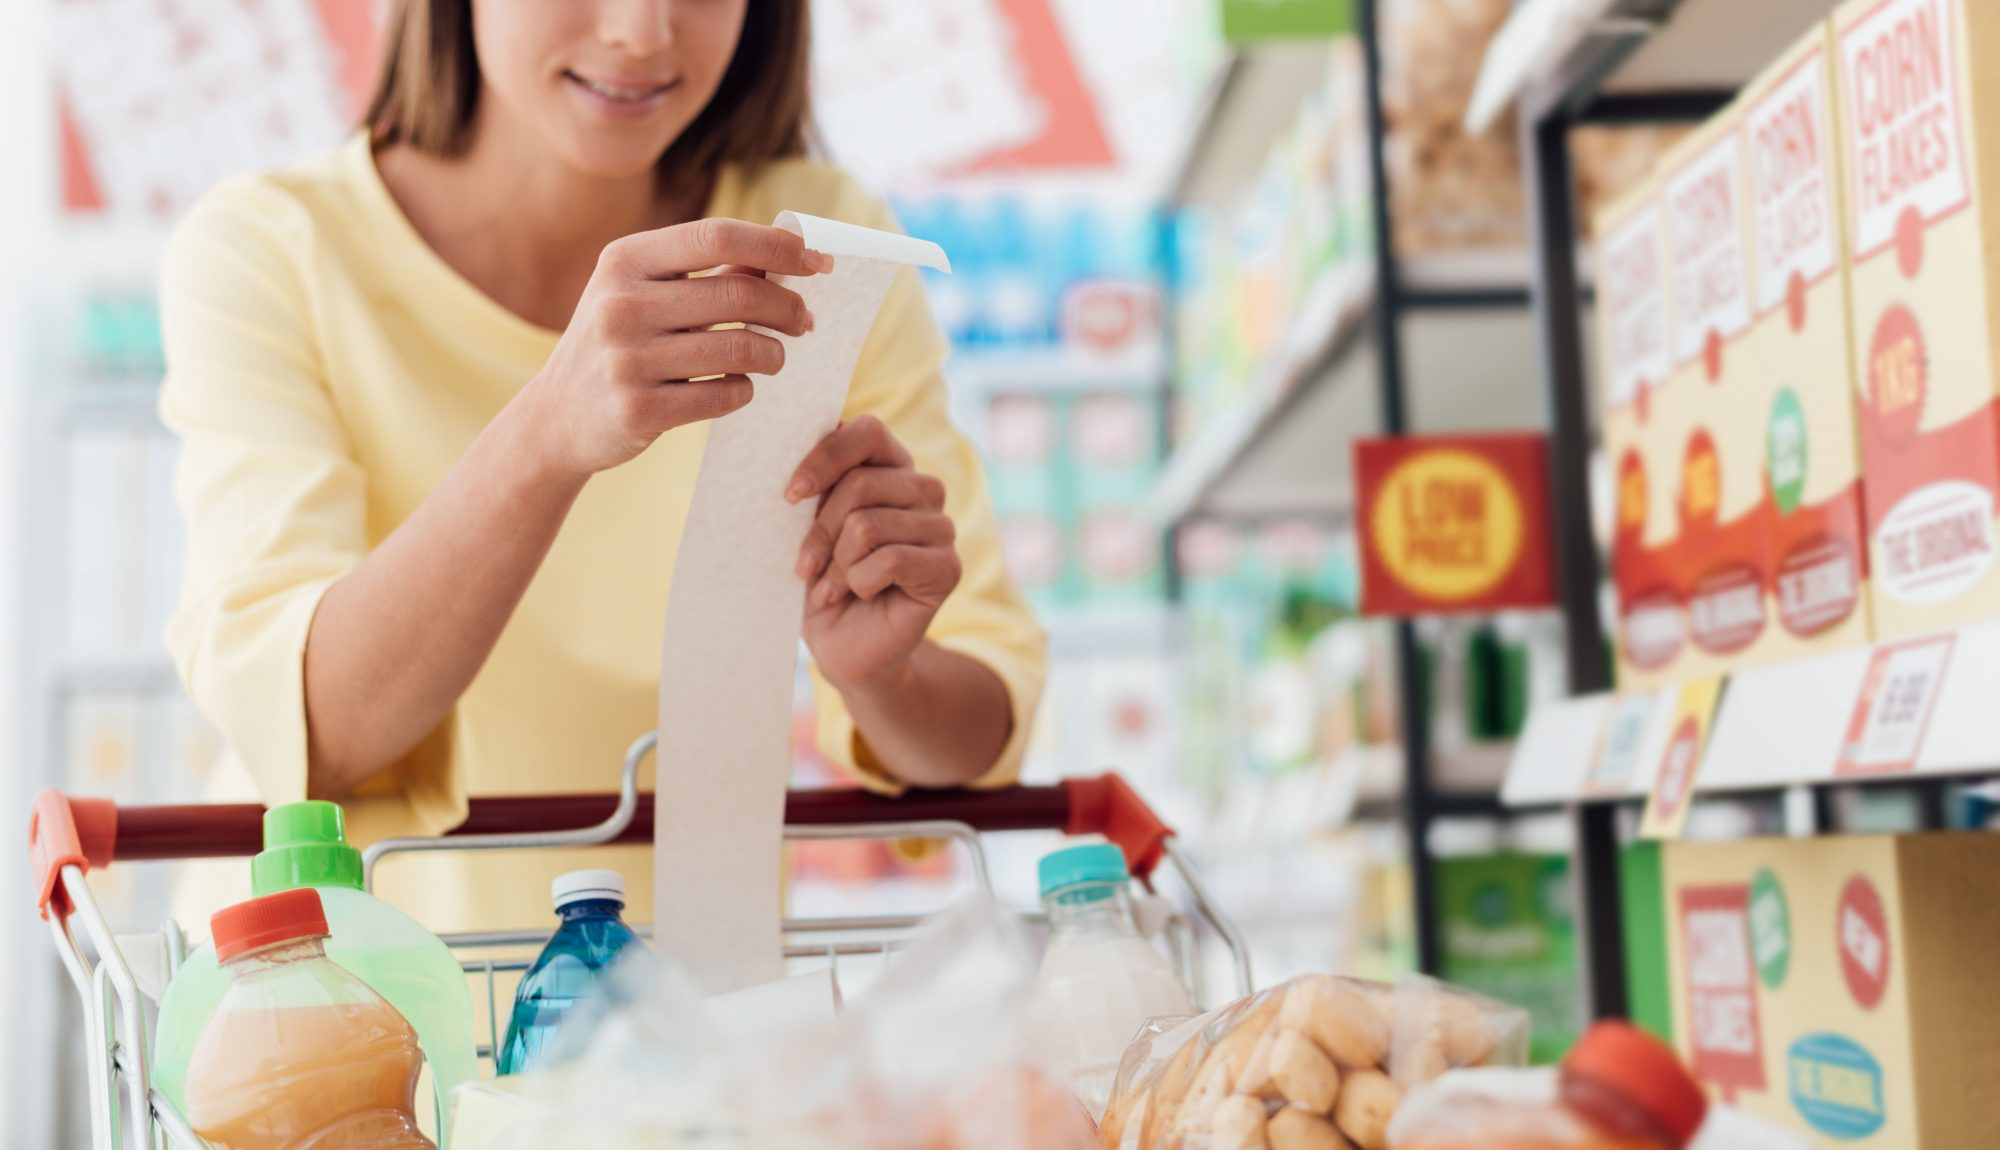 Woman Checking Receipt at Grocery Store